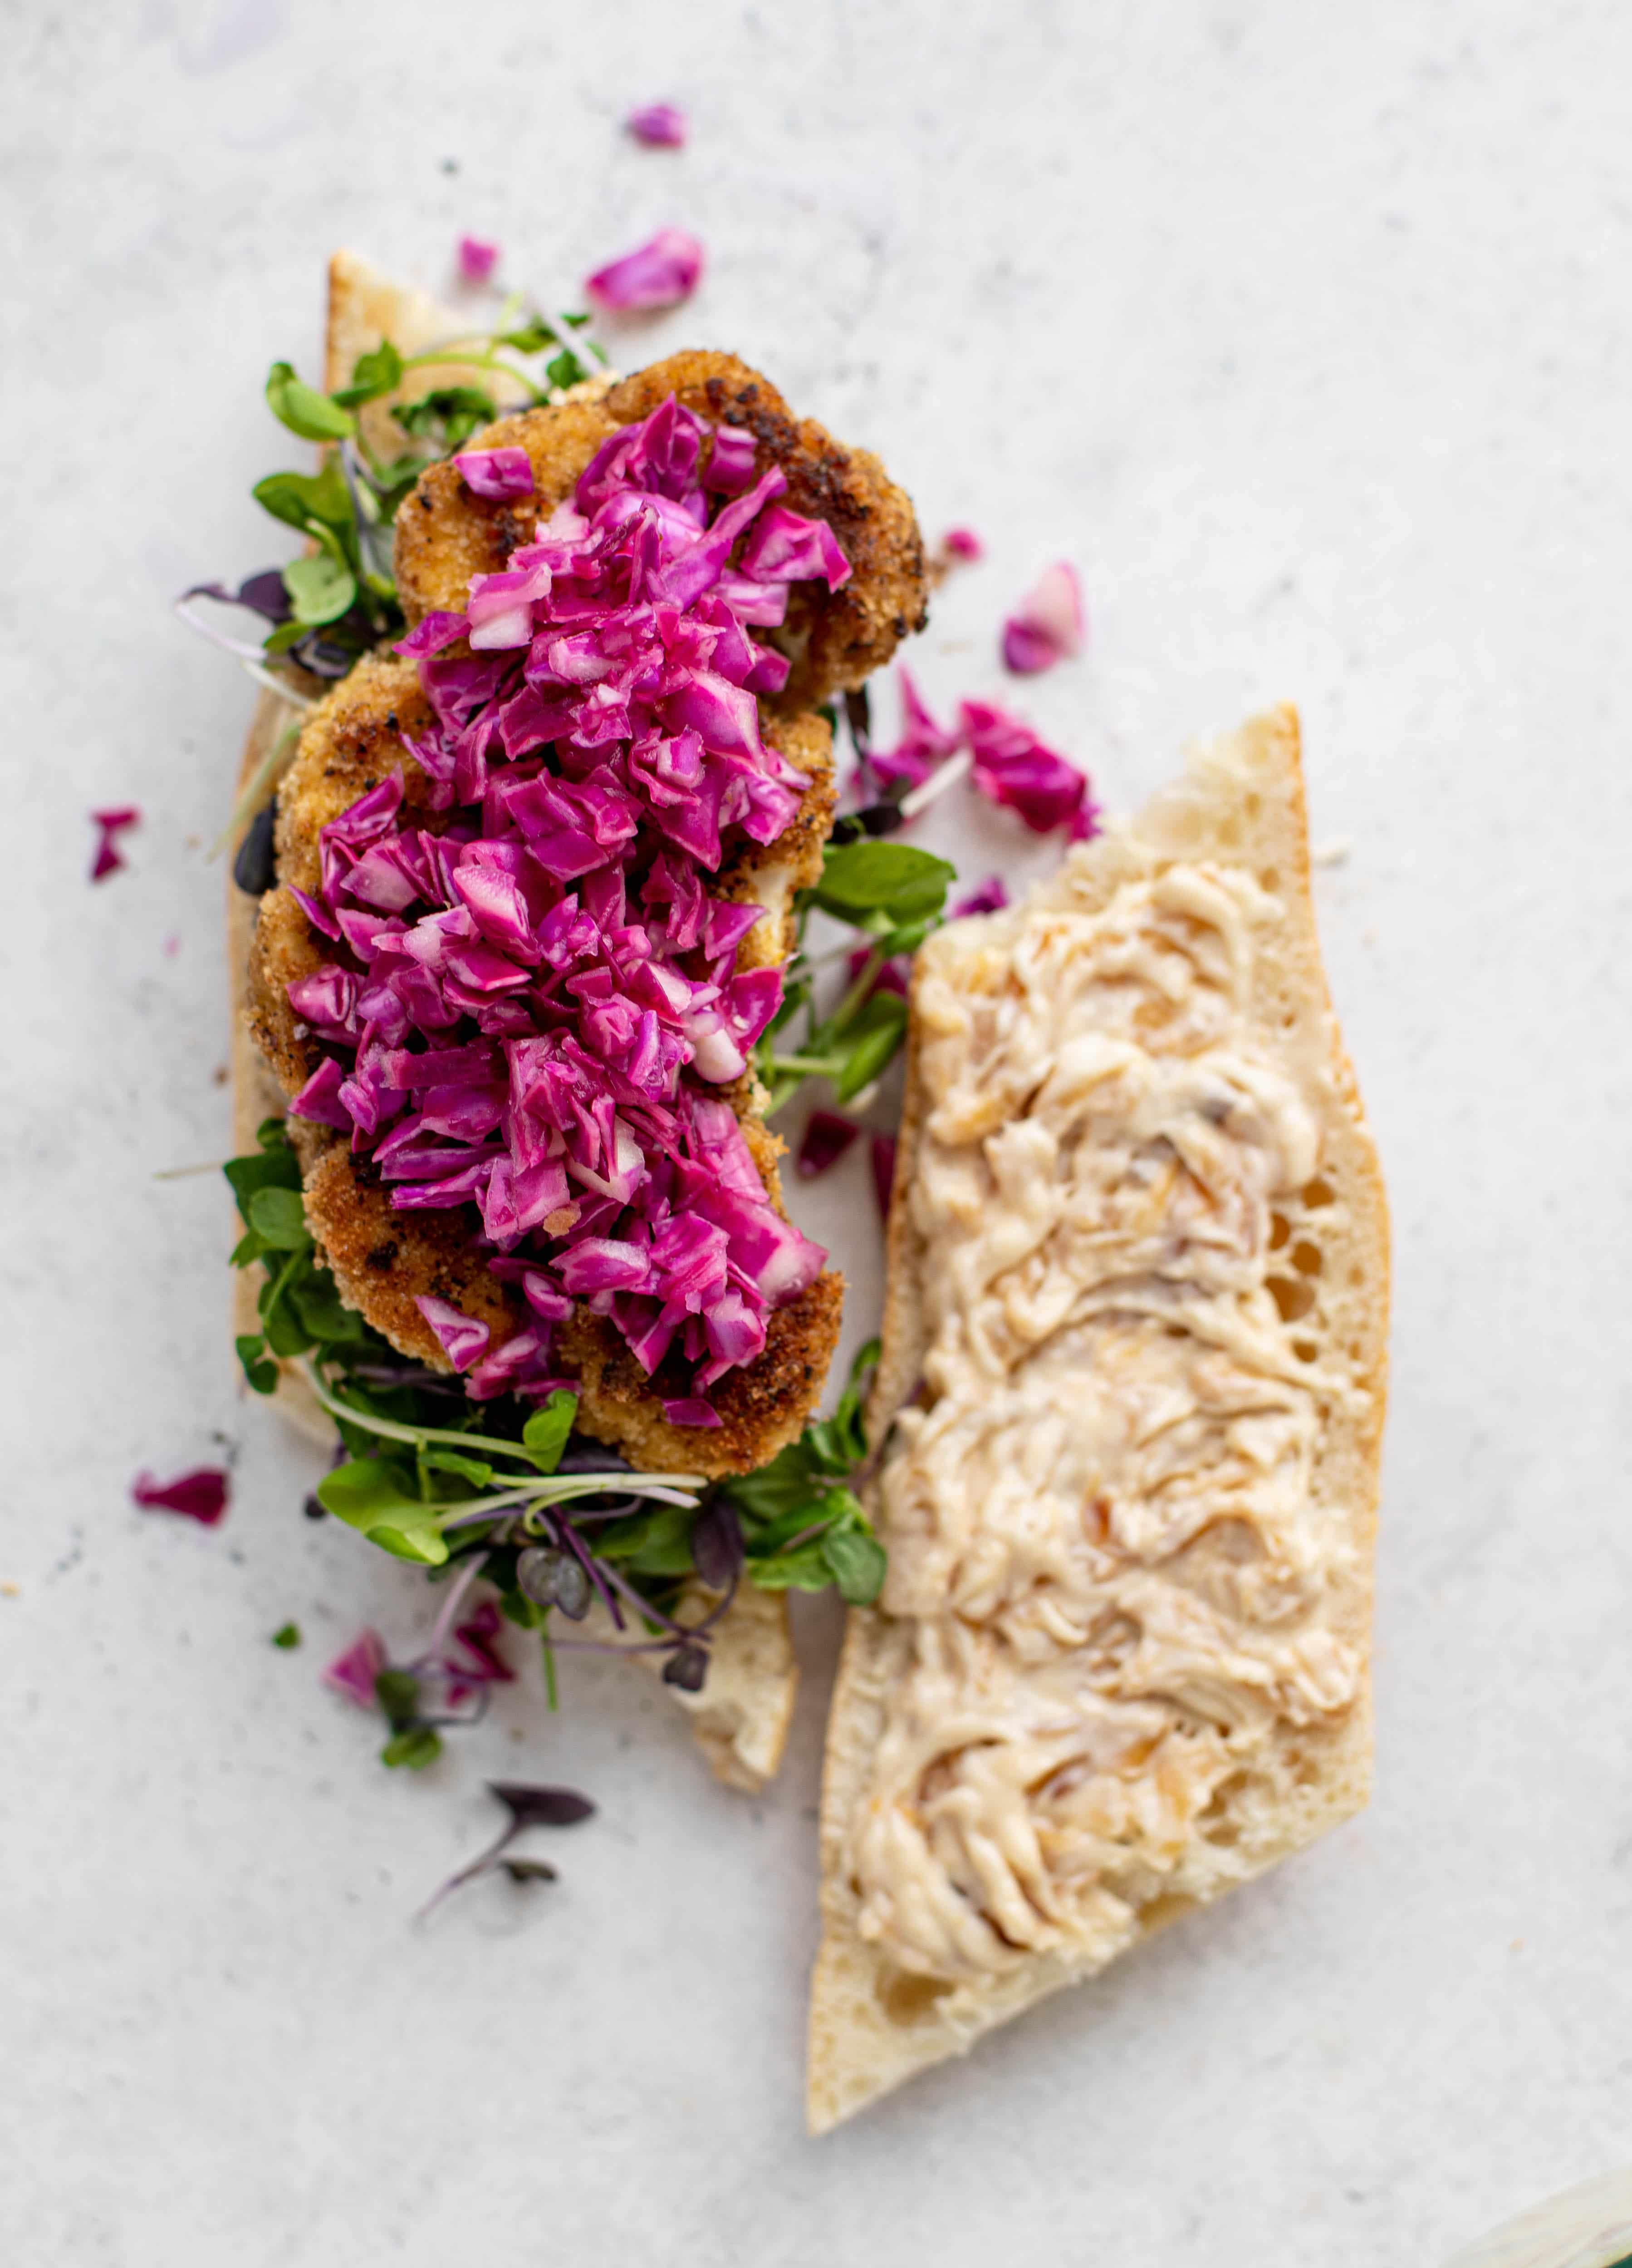 These cauliflower schnitzel sandwiches are full of flavor! Crispy cauliflower, caramelized onion mayo, pickled cabbage and microgreens. Delish!